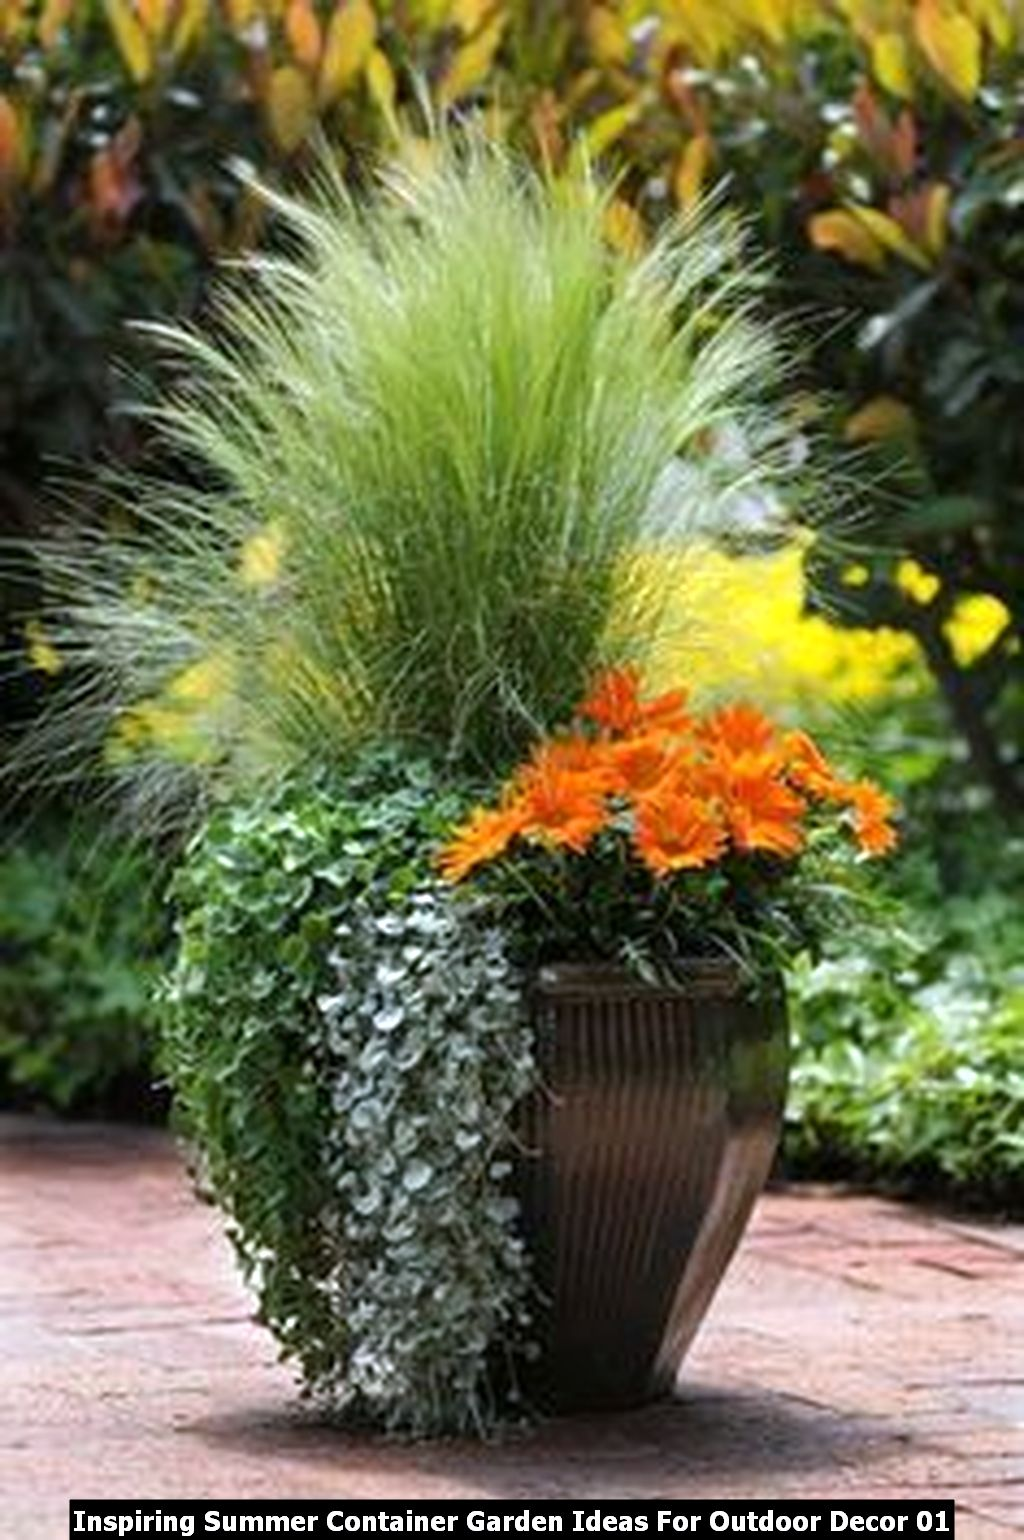 Inspiring Summer Container Garden Ideas For Outdoor Decor 01